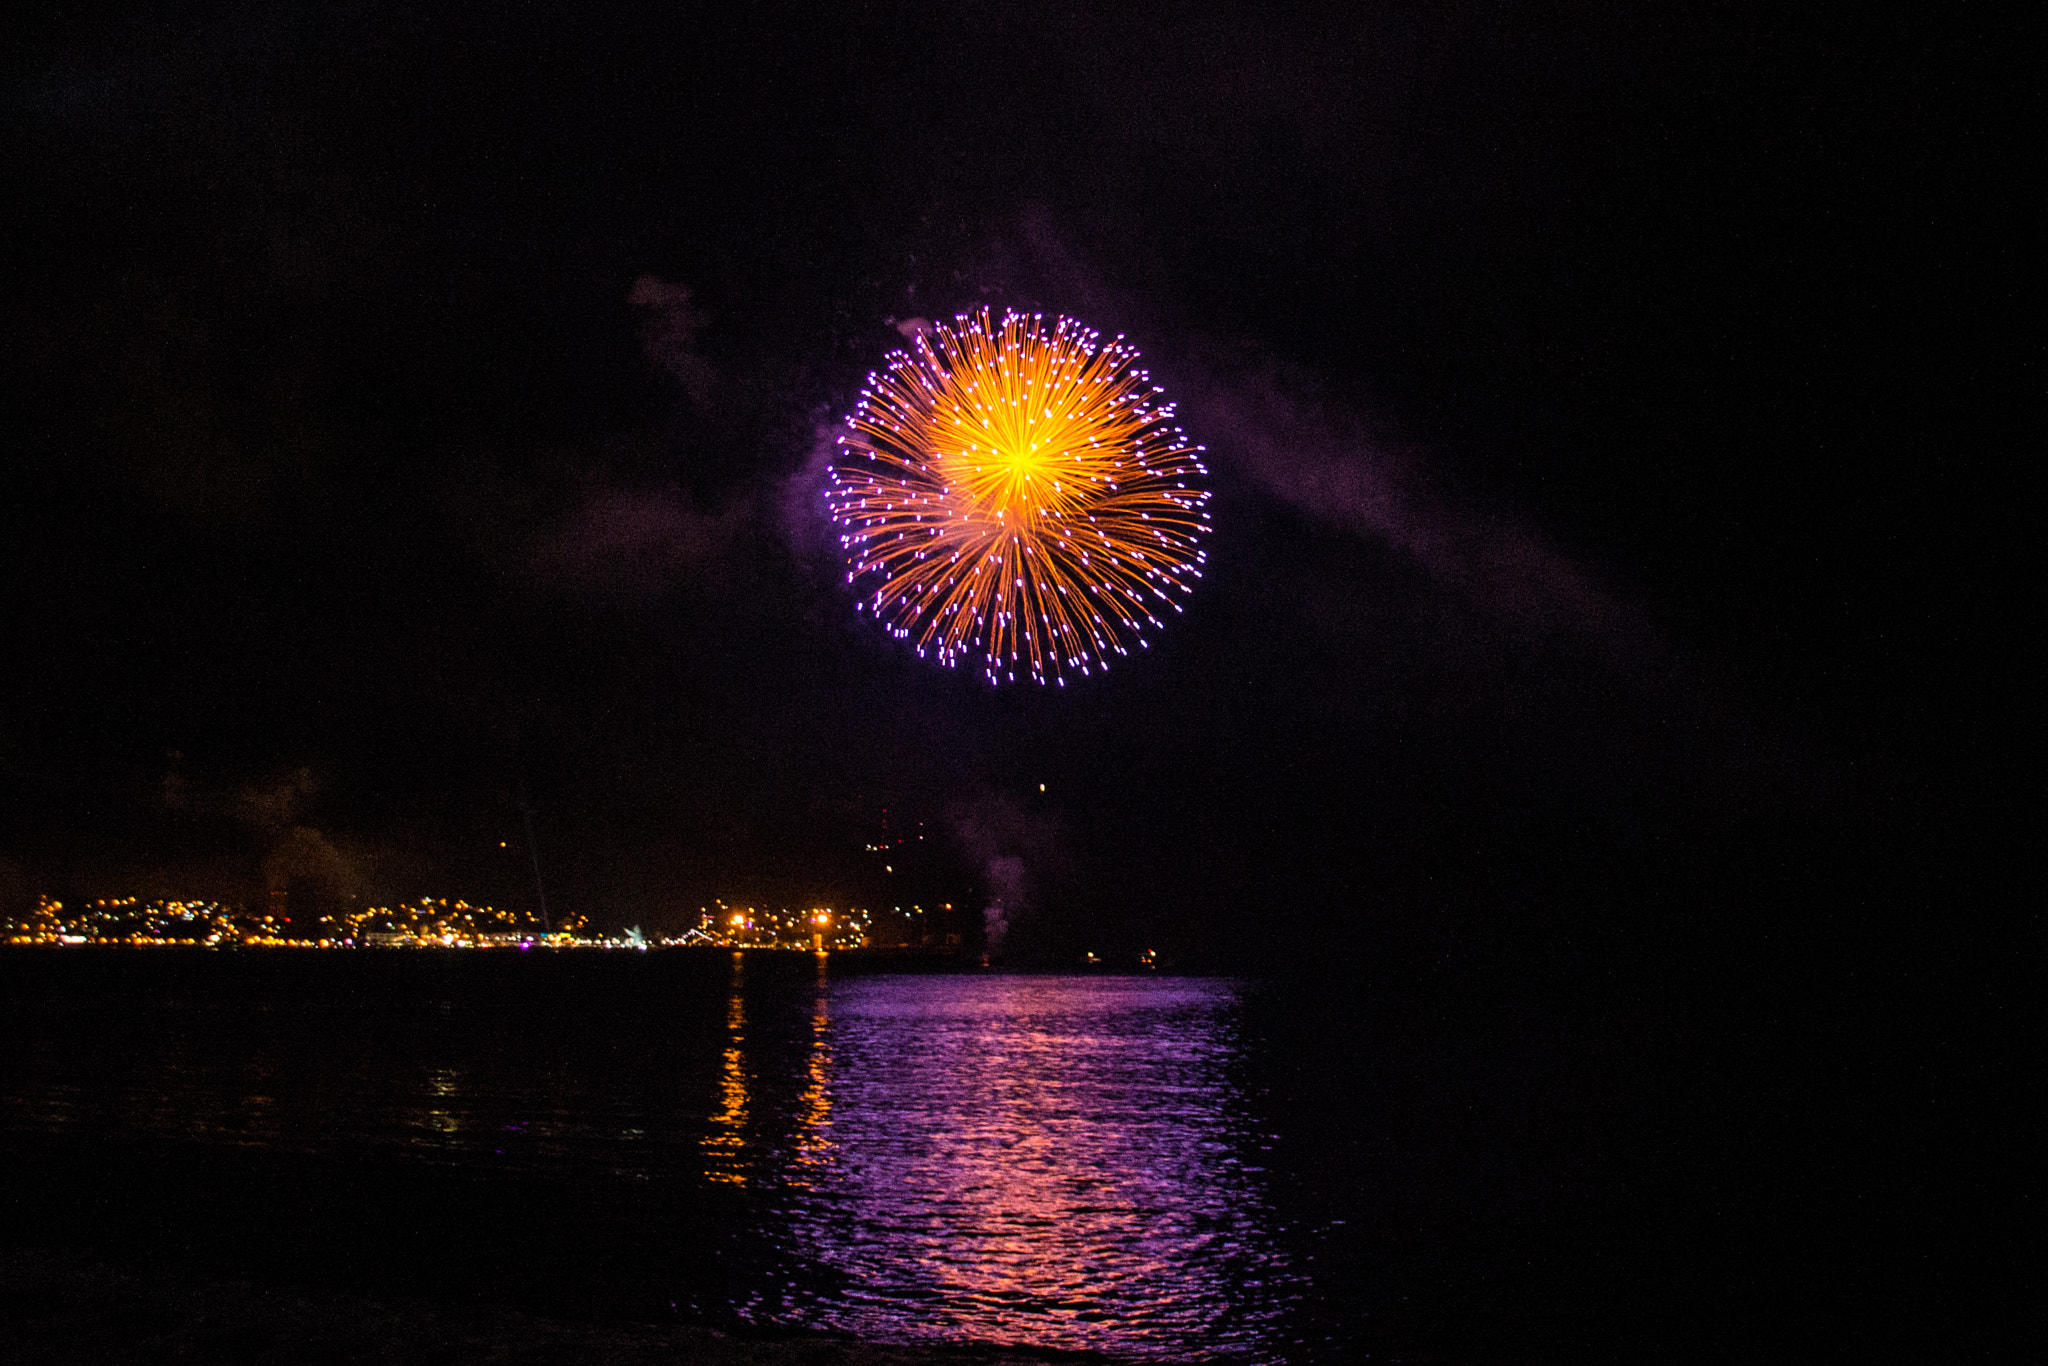 Photograph New Year's Eve by Analy Jmz on 500px